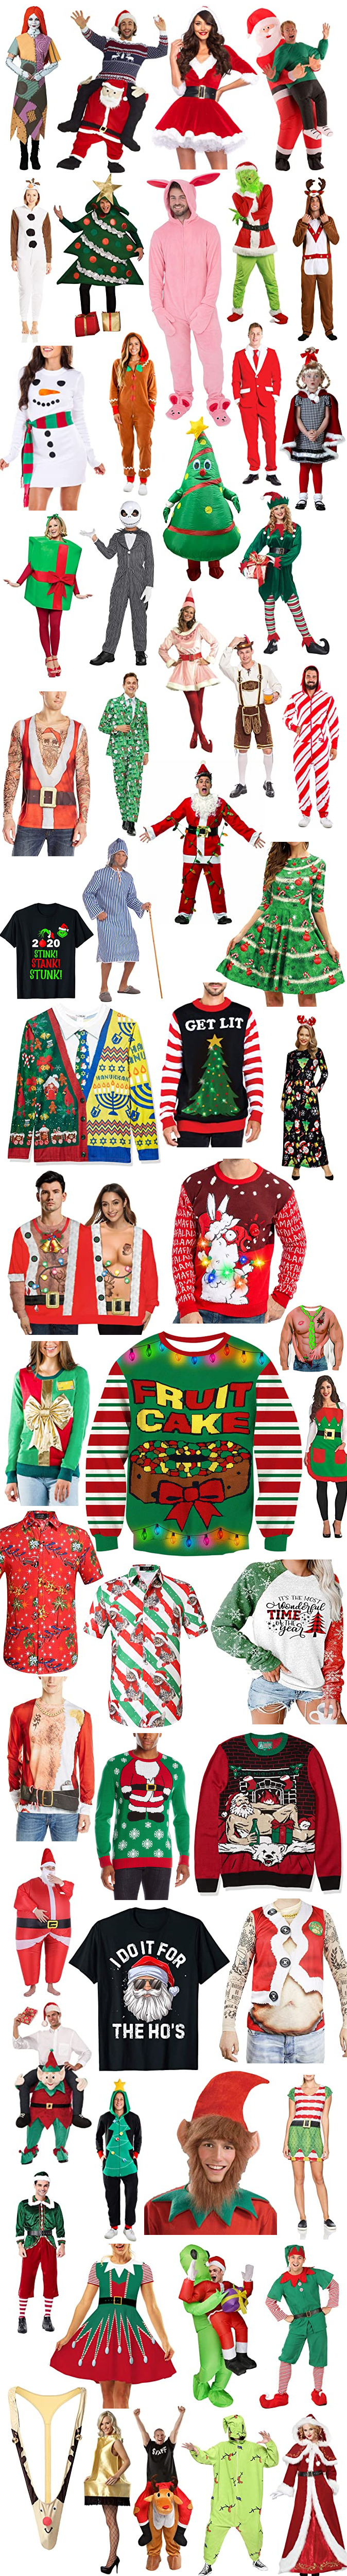 Fun-Christmas-Holiday-Outfits-Costumes